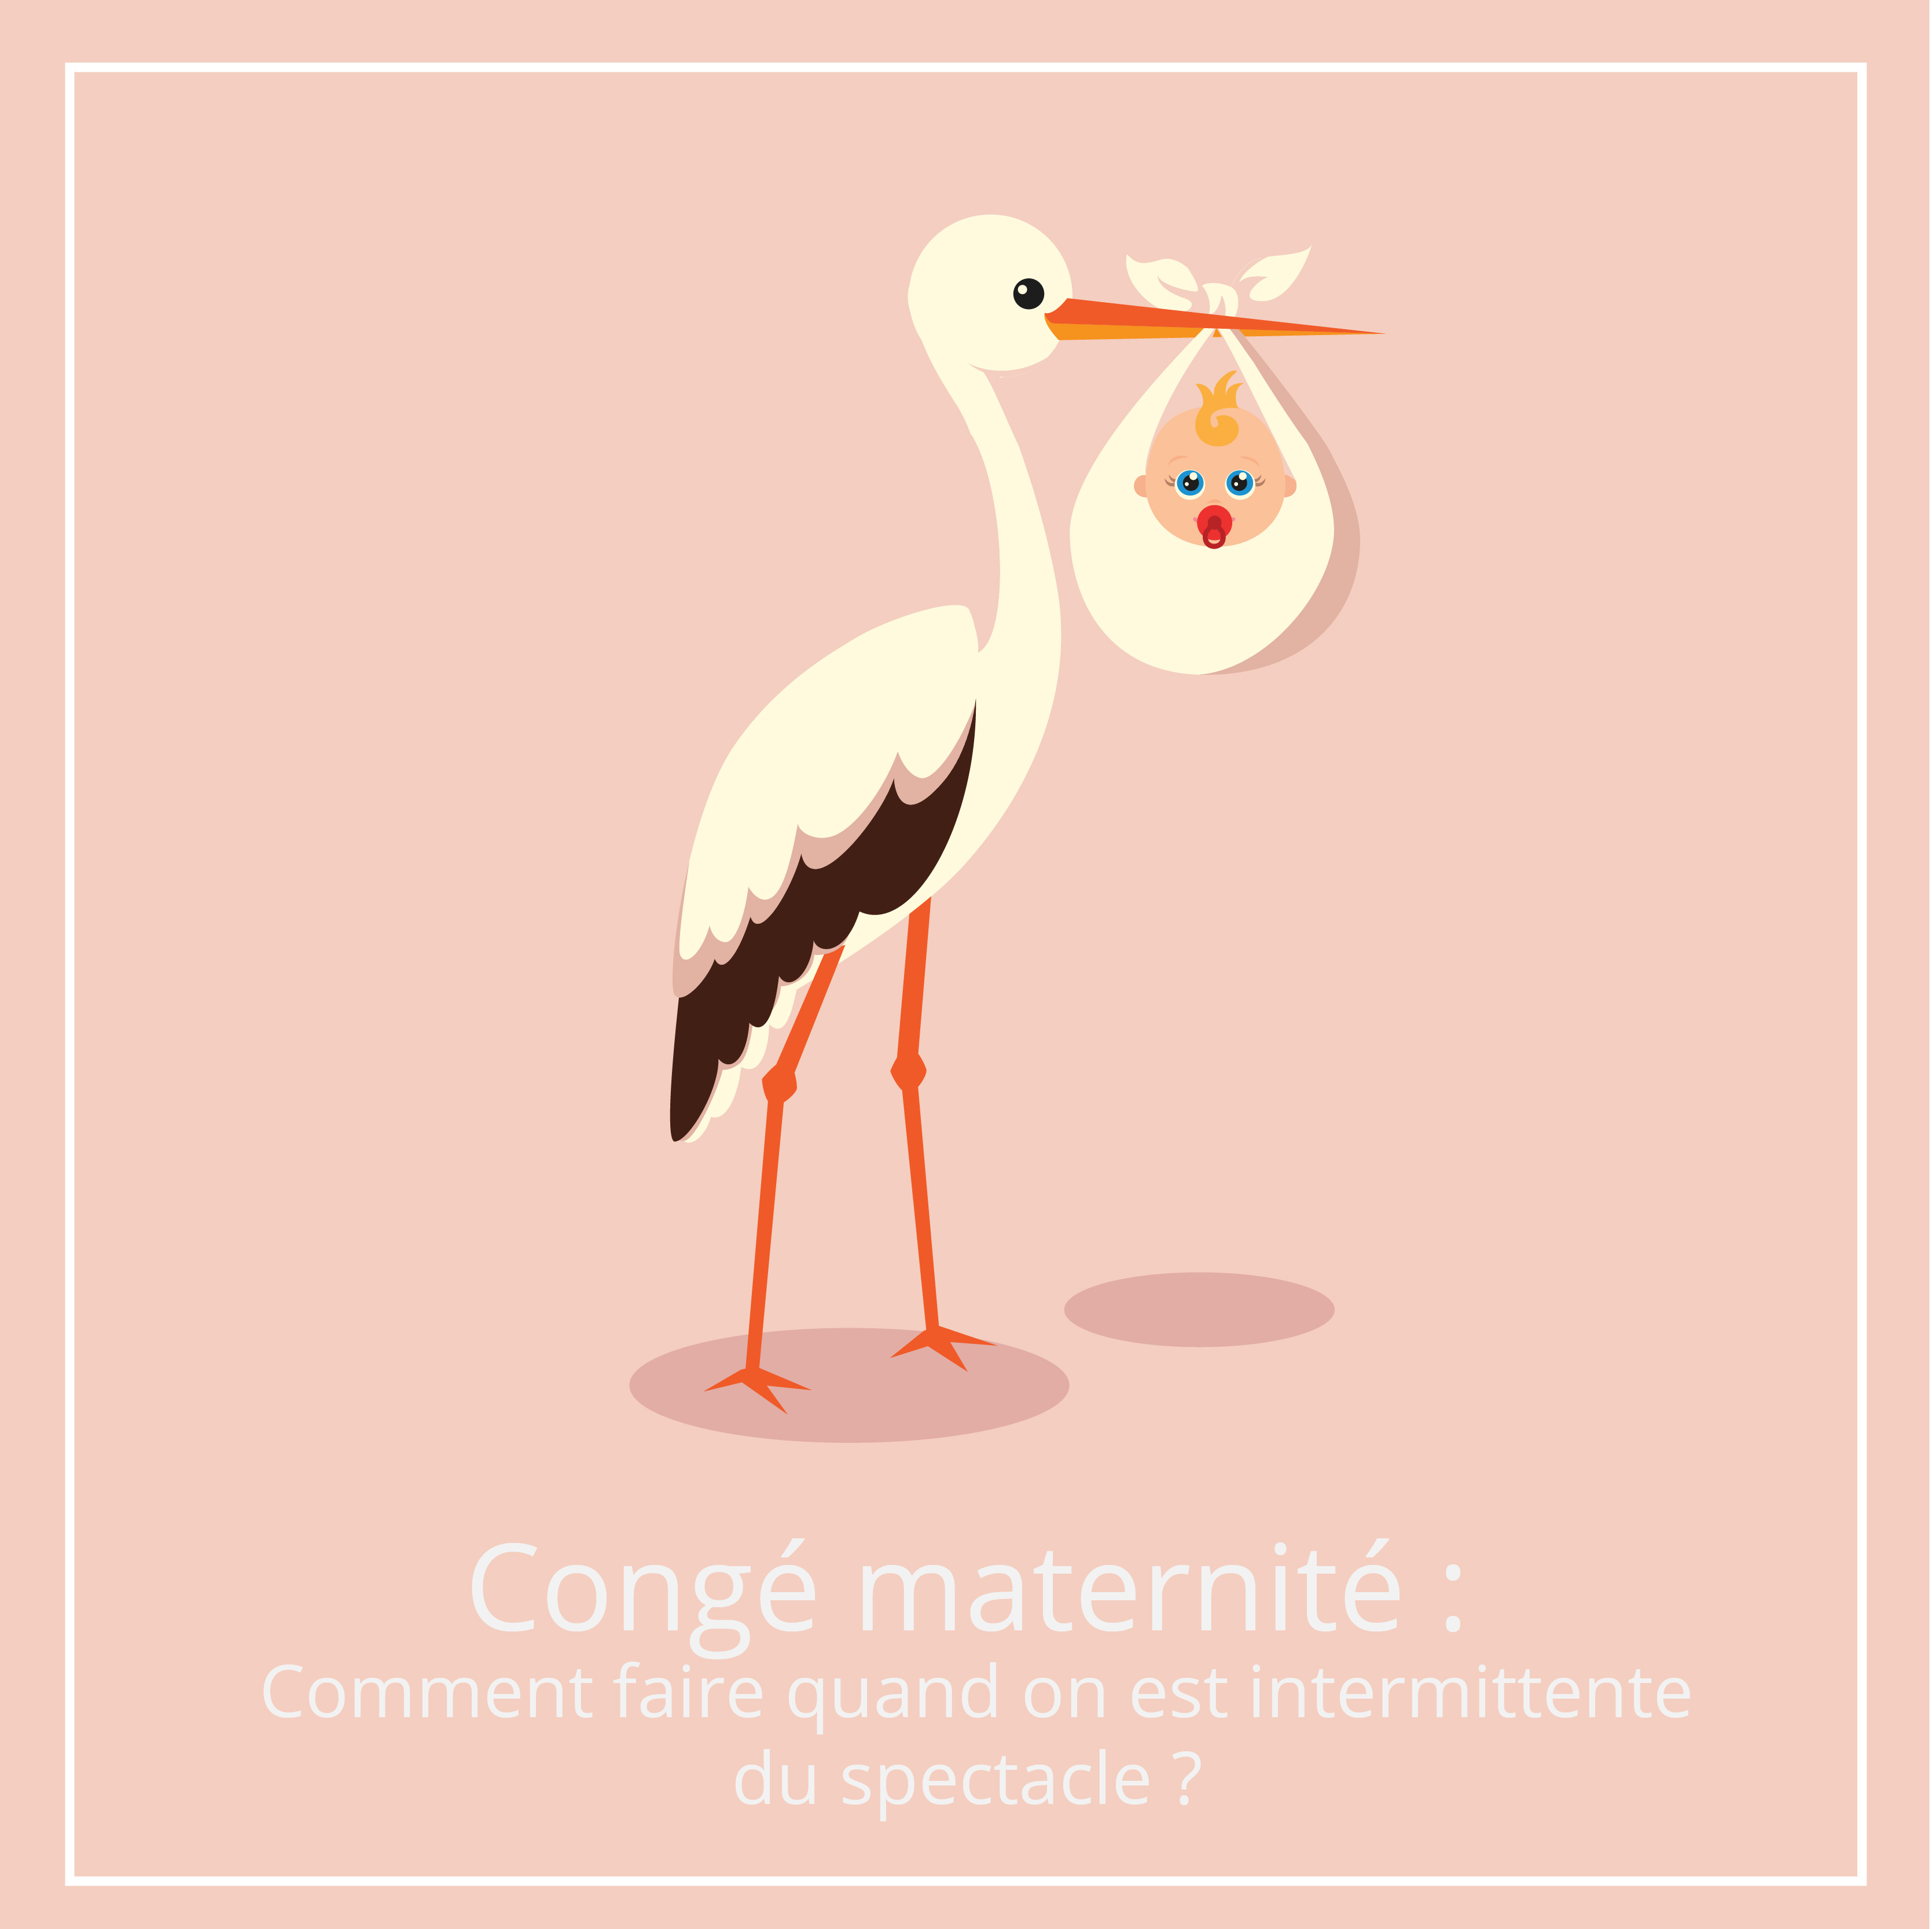 conge maternite comment faire quand on est intermittente du spectacle ?